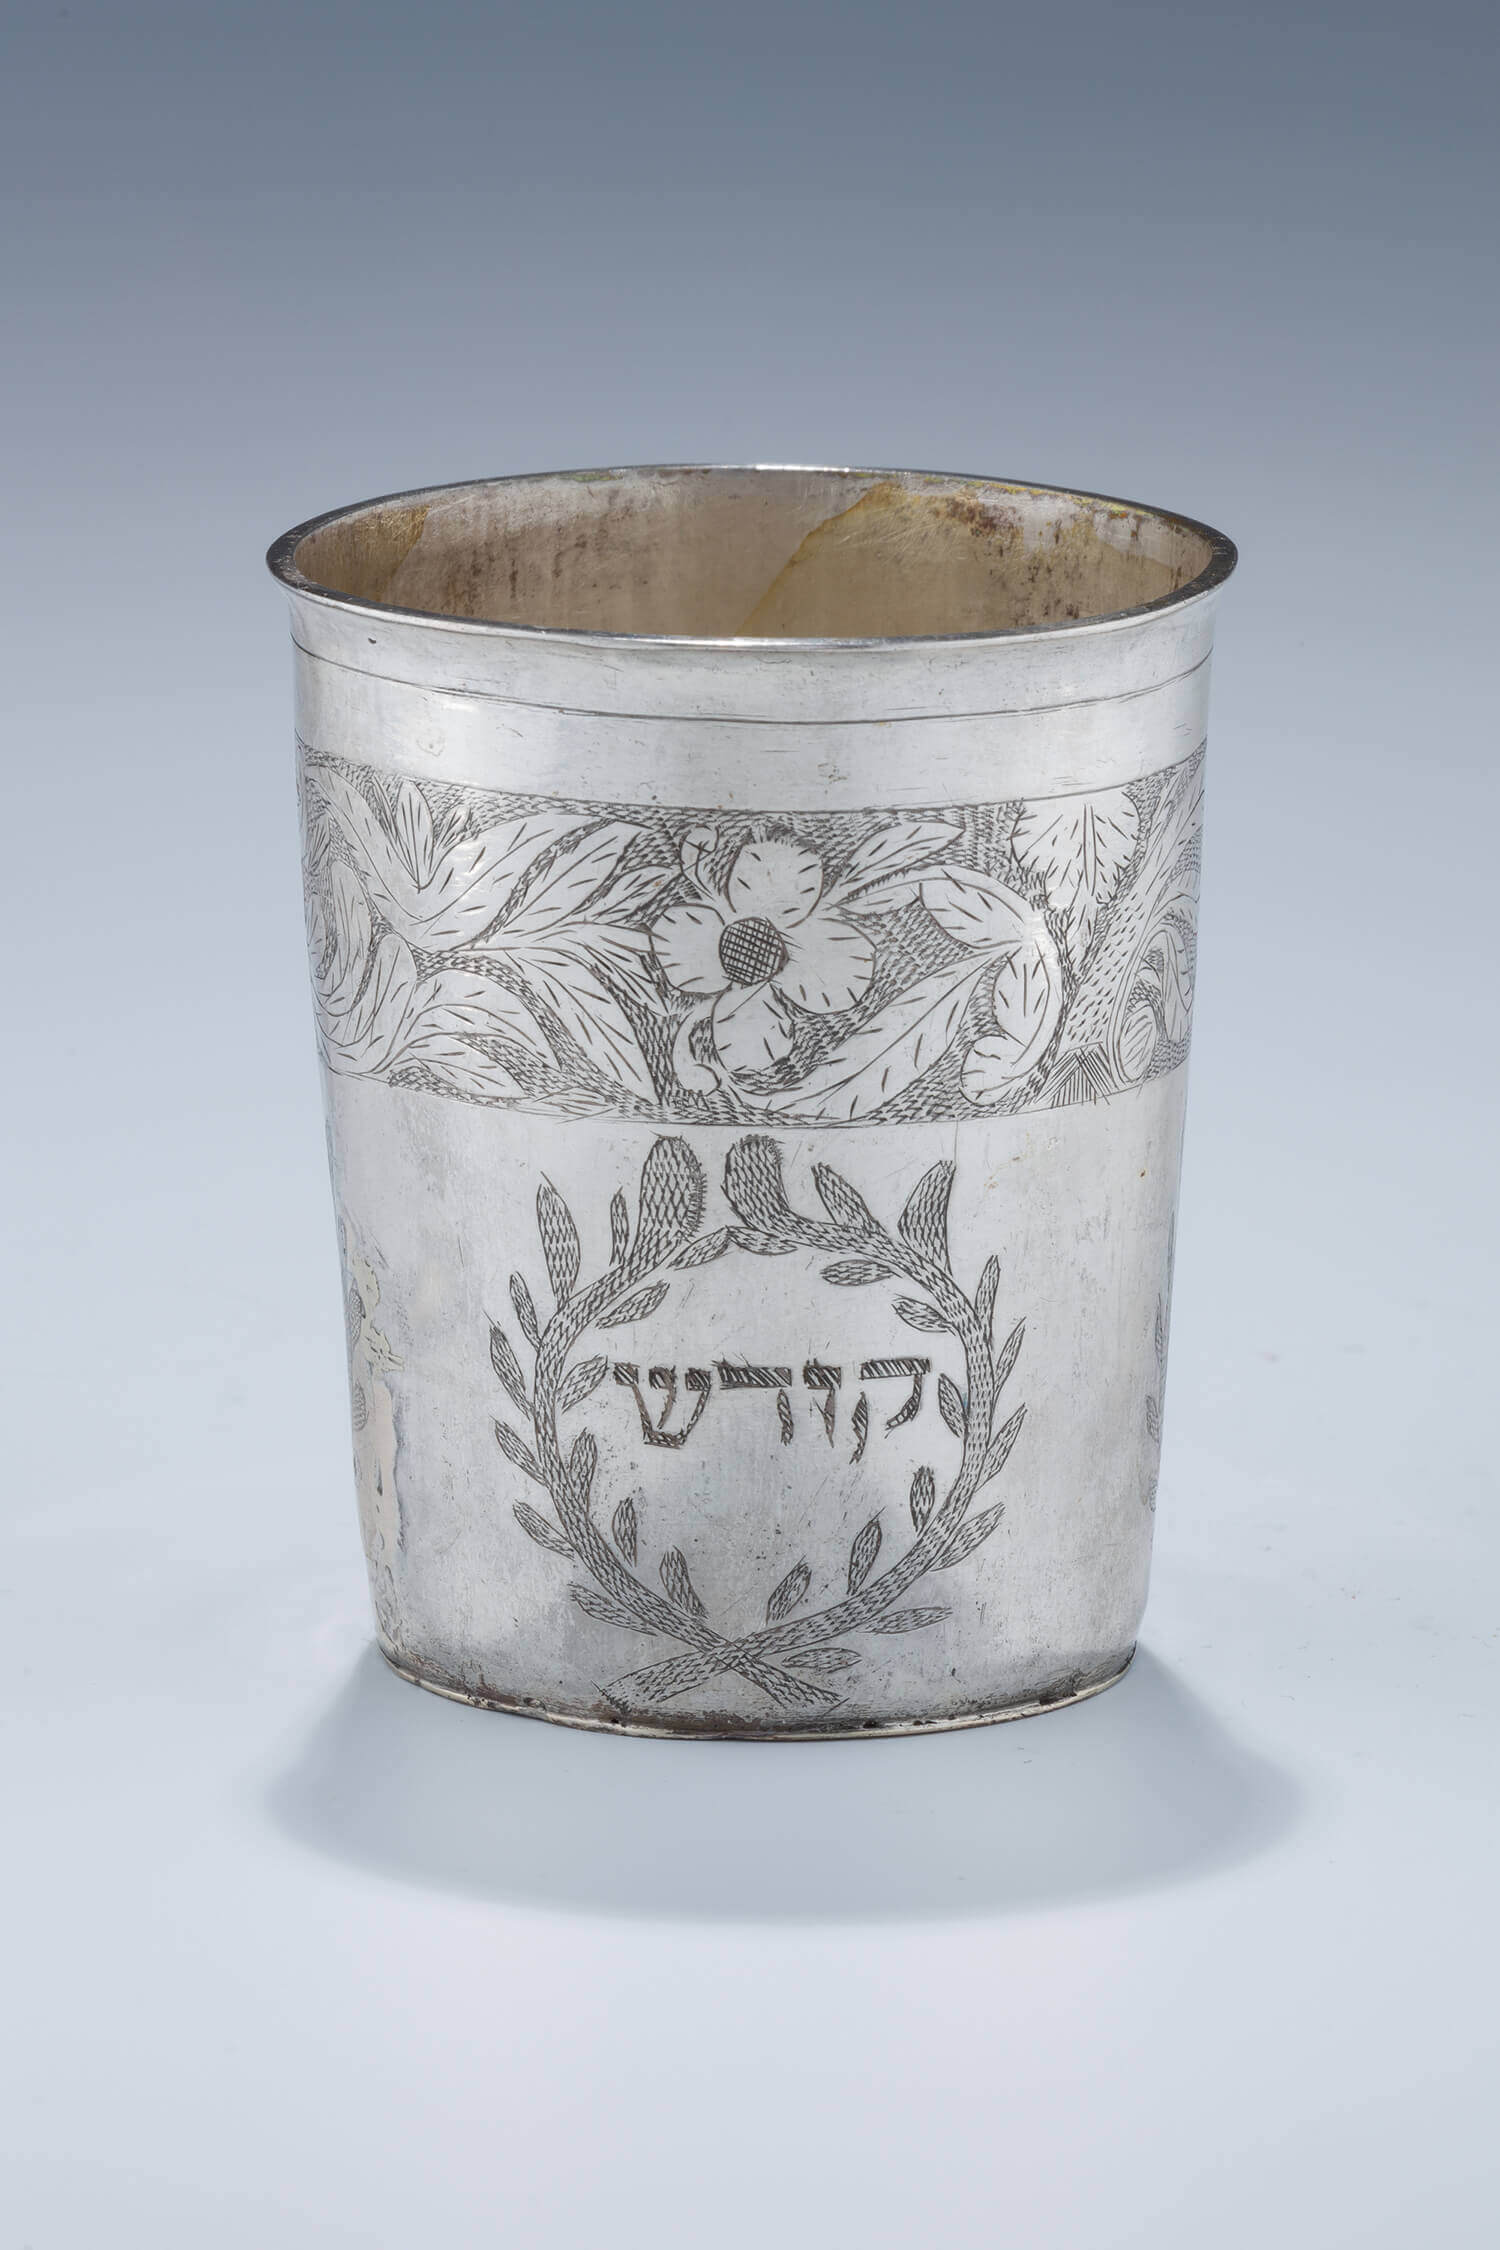 039. A LARGE SILVER KIDDUSH CUP